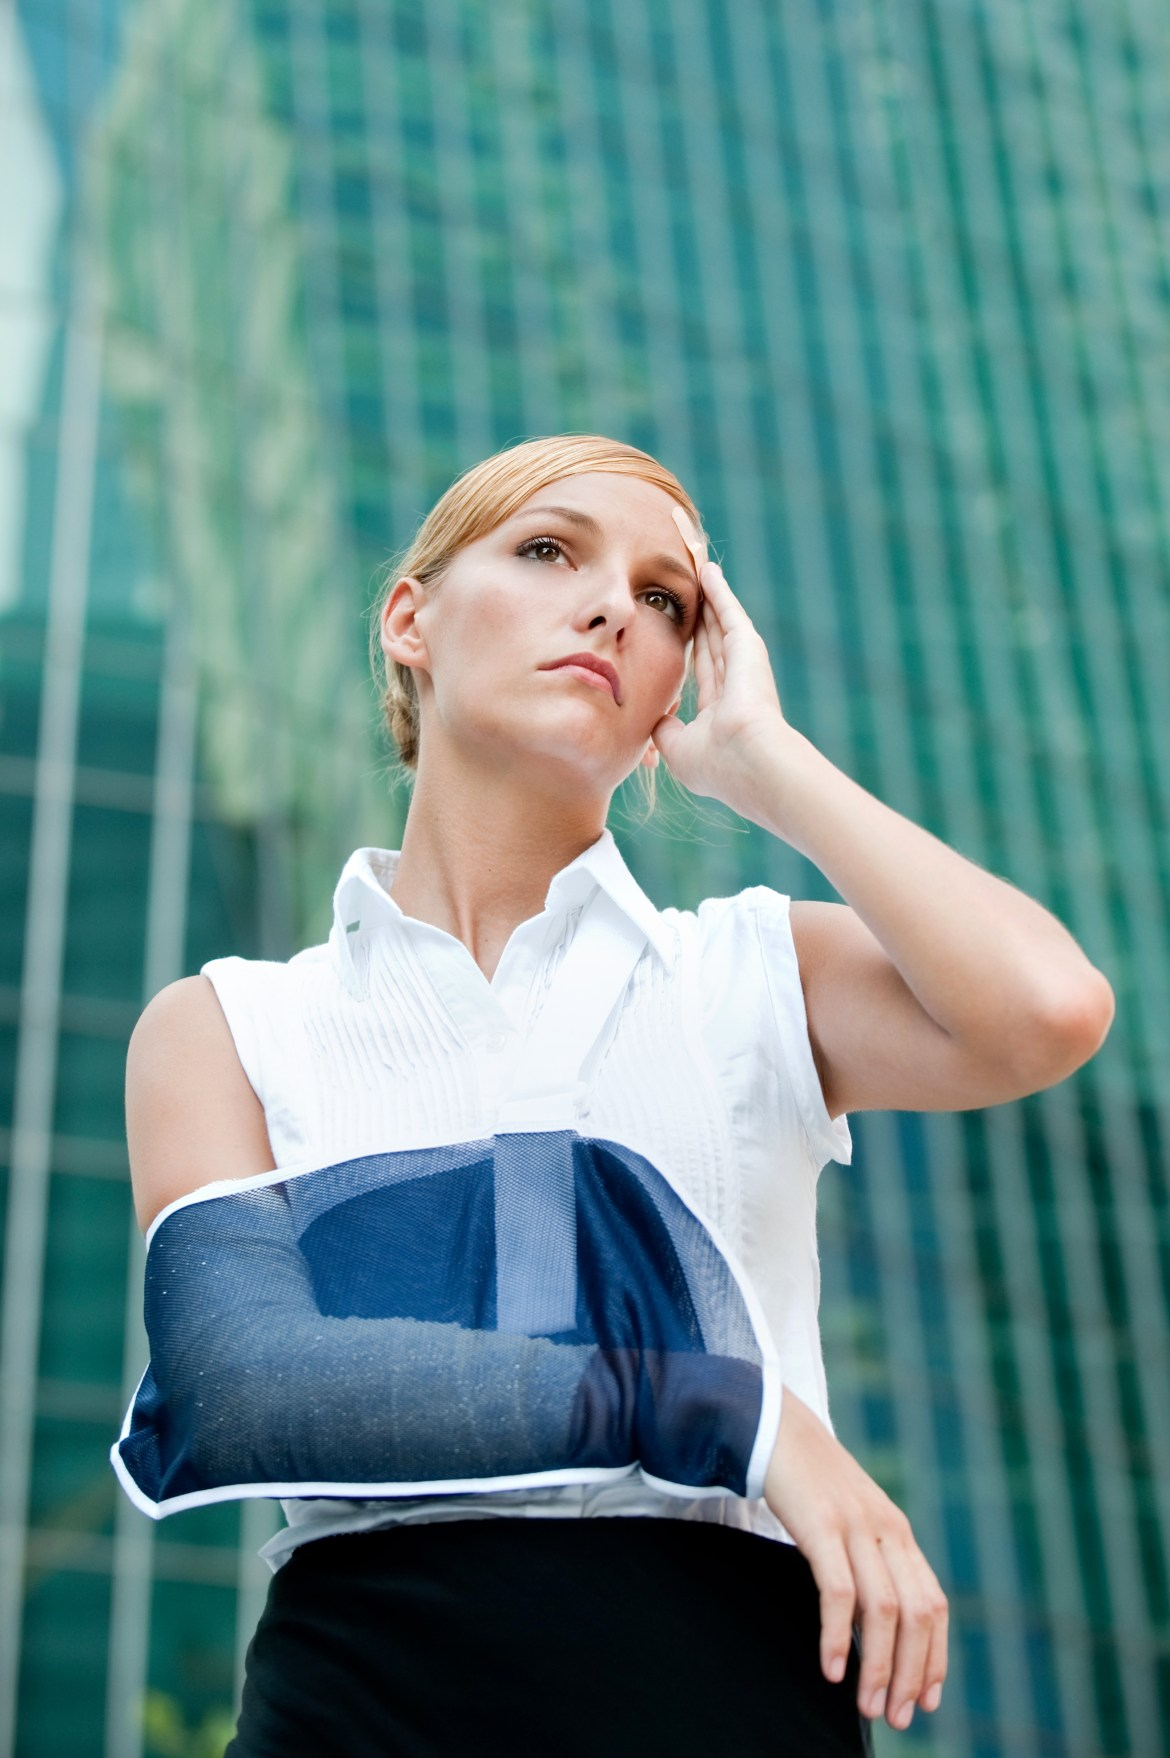 Personal Injury Lawyer Fall River Ma Do You Need A